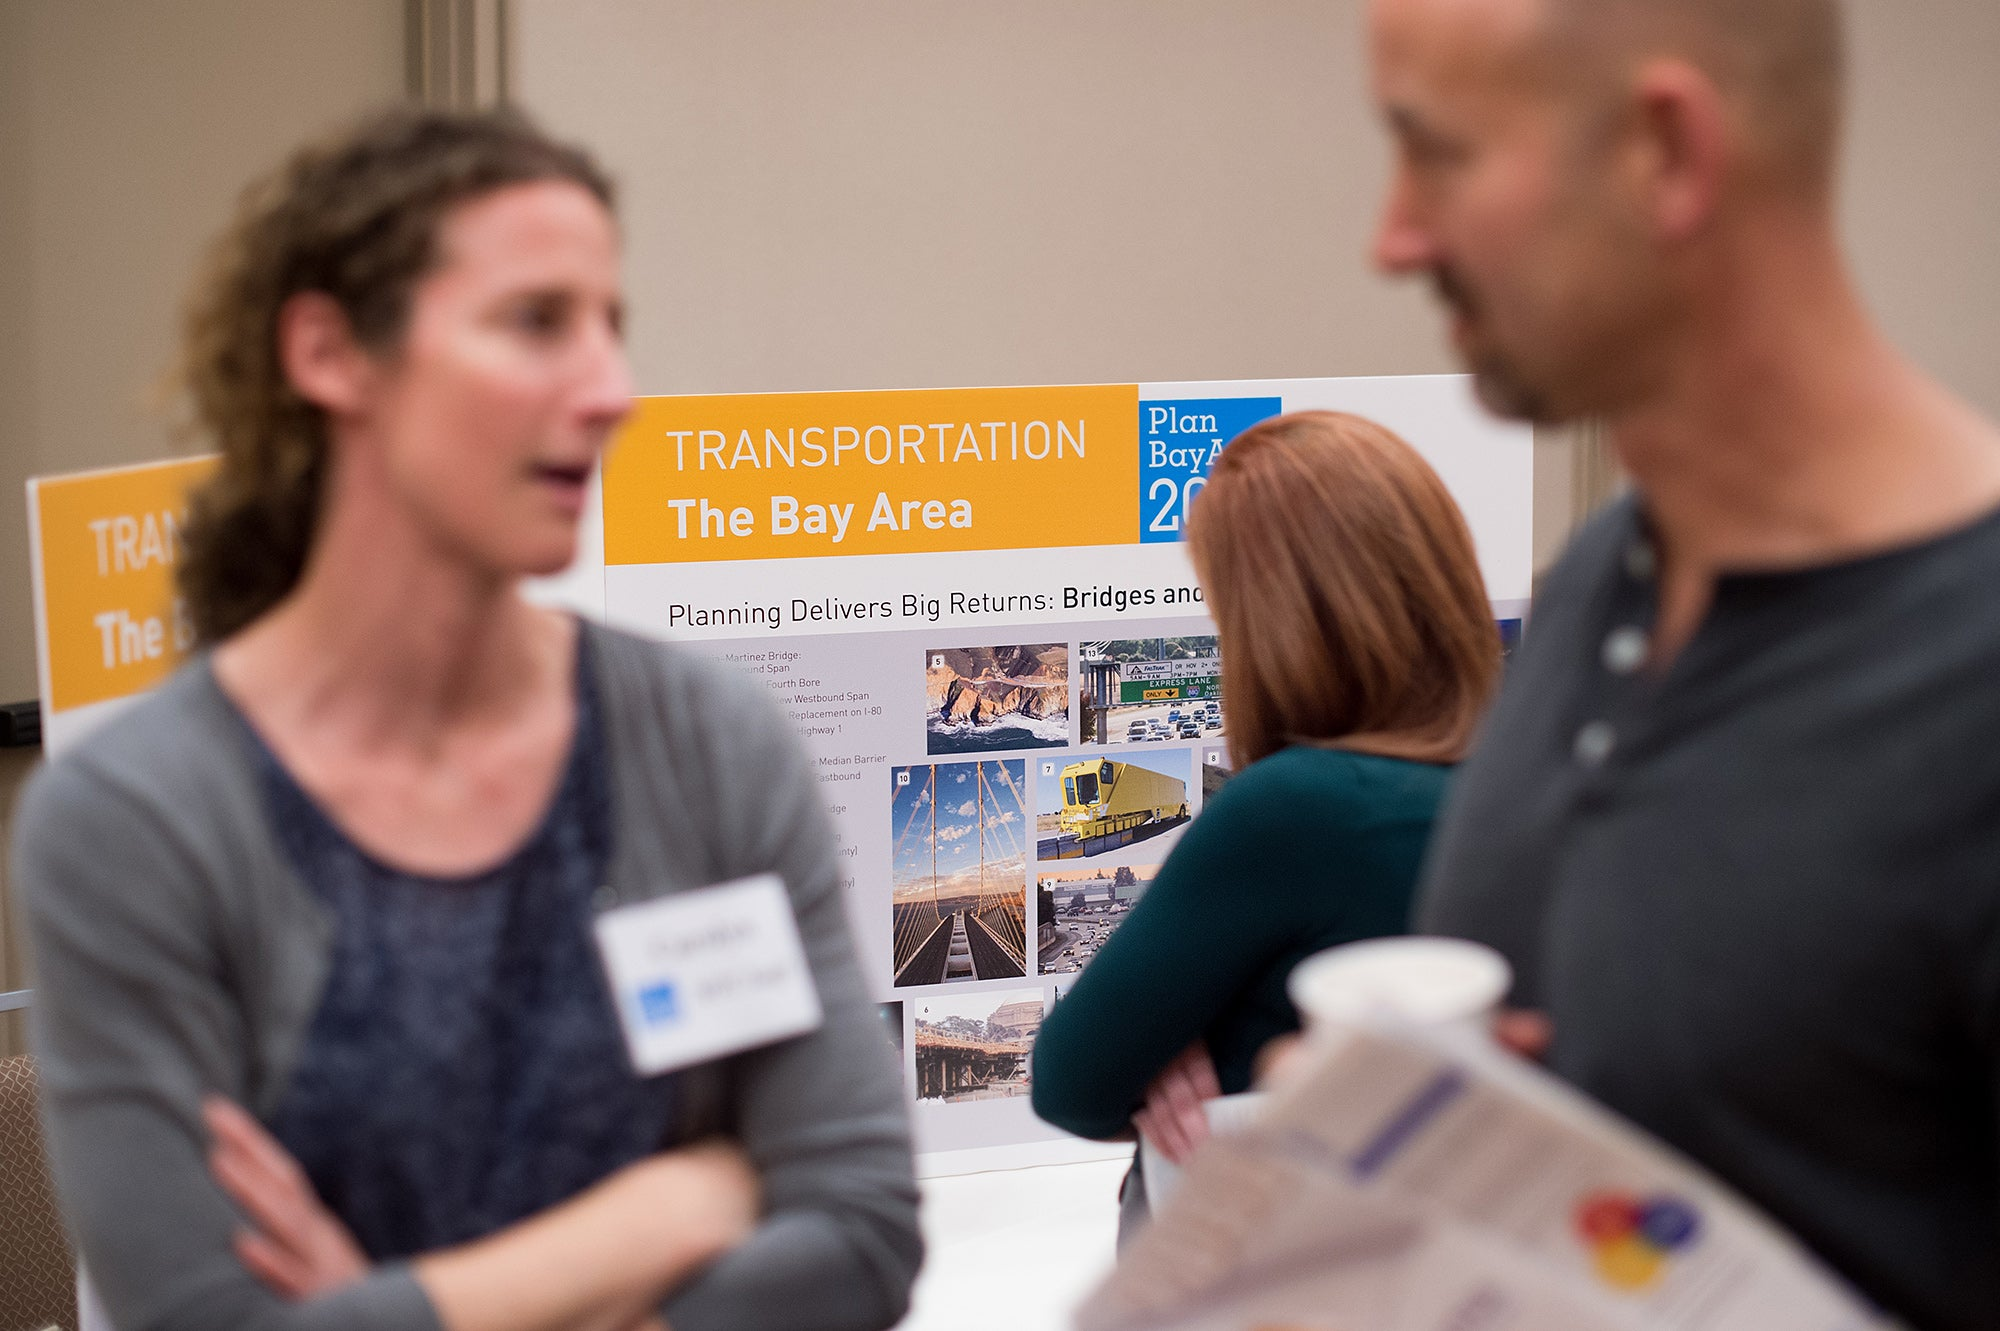 MTC staff member Carolyn Clevenger (left) speaks with an attendee.